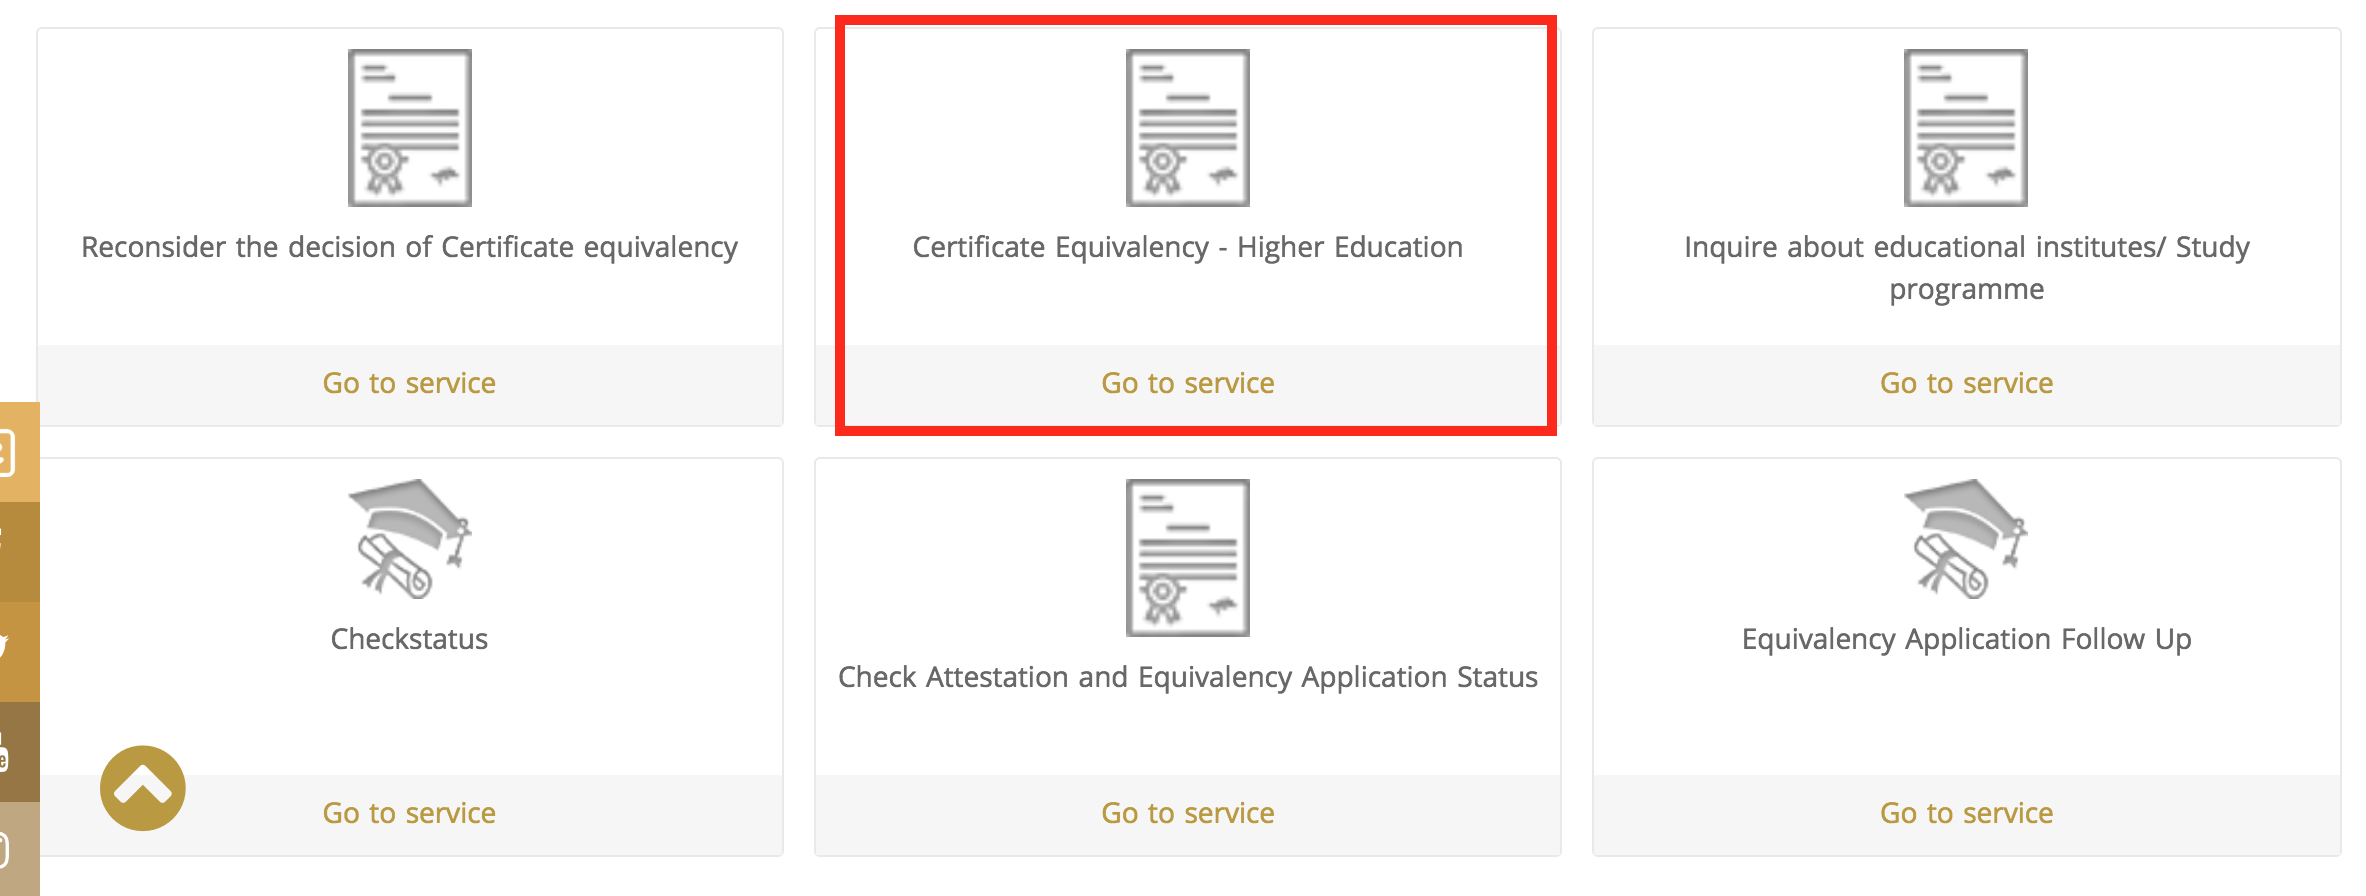 Certificate Equivalency – Higher Education